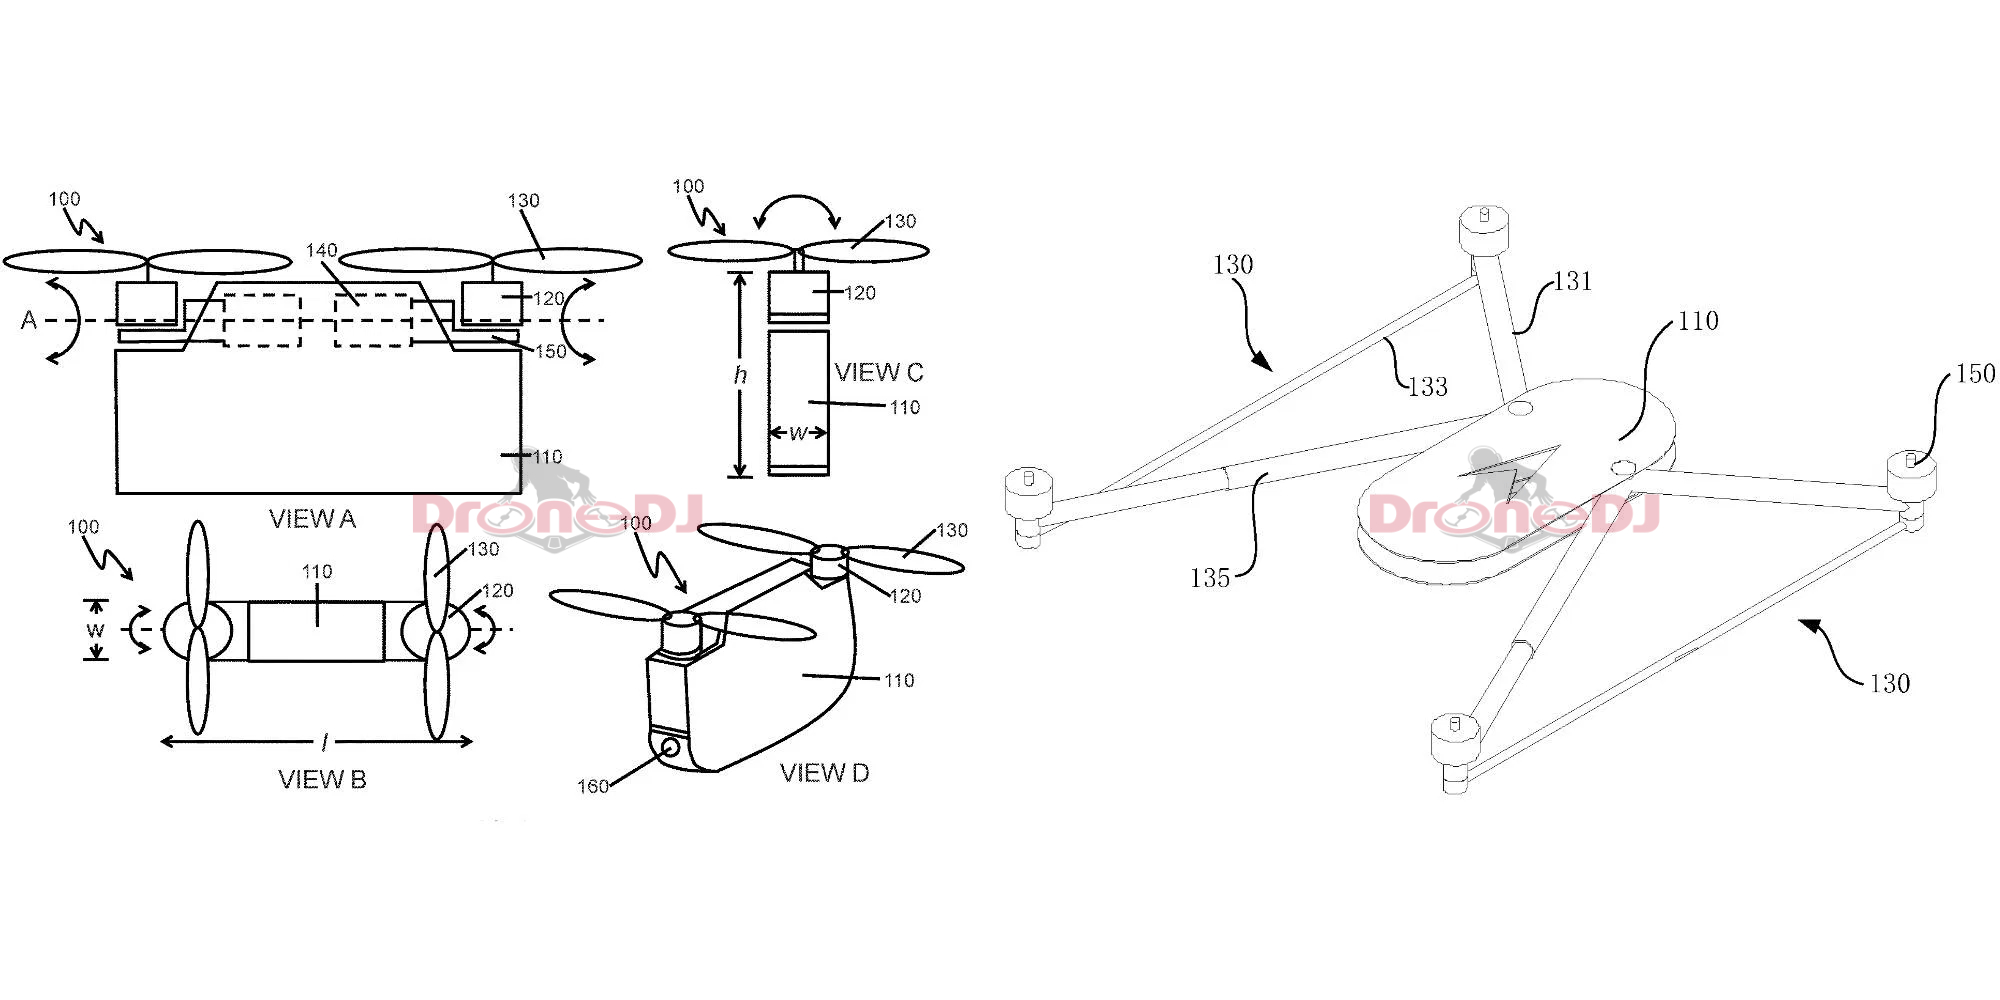 DJI bi-copter and drone frame made public by CNIPA patents - DroneDJ